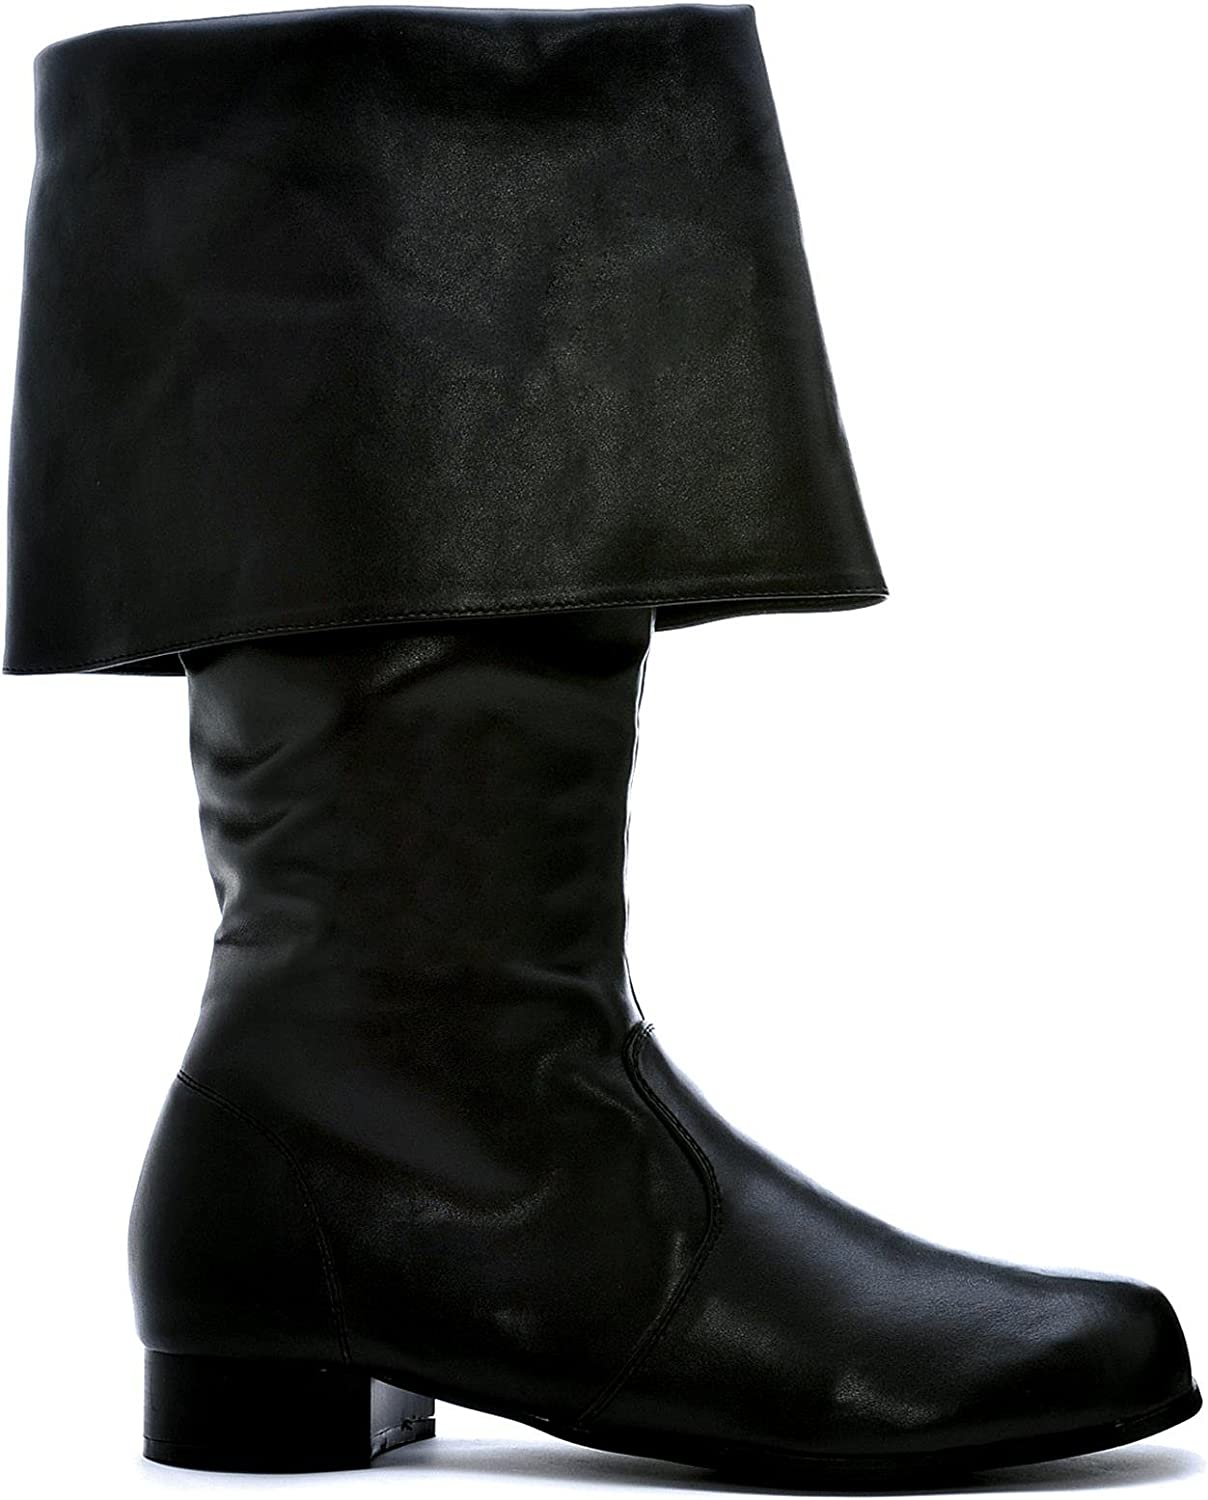 Ellie shoes Womens Hook (Black) Adult Boots Polyester